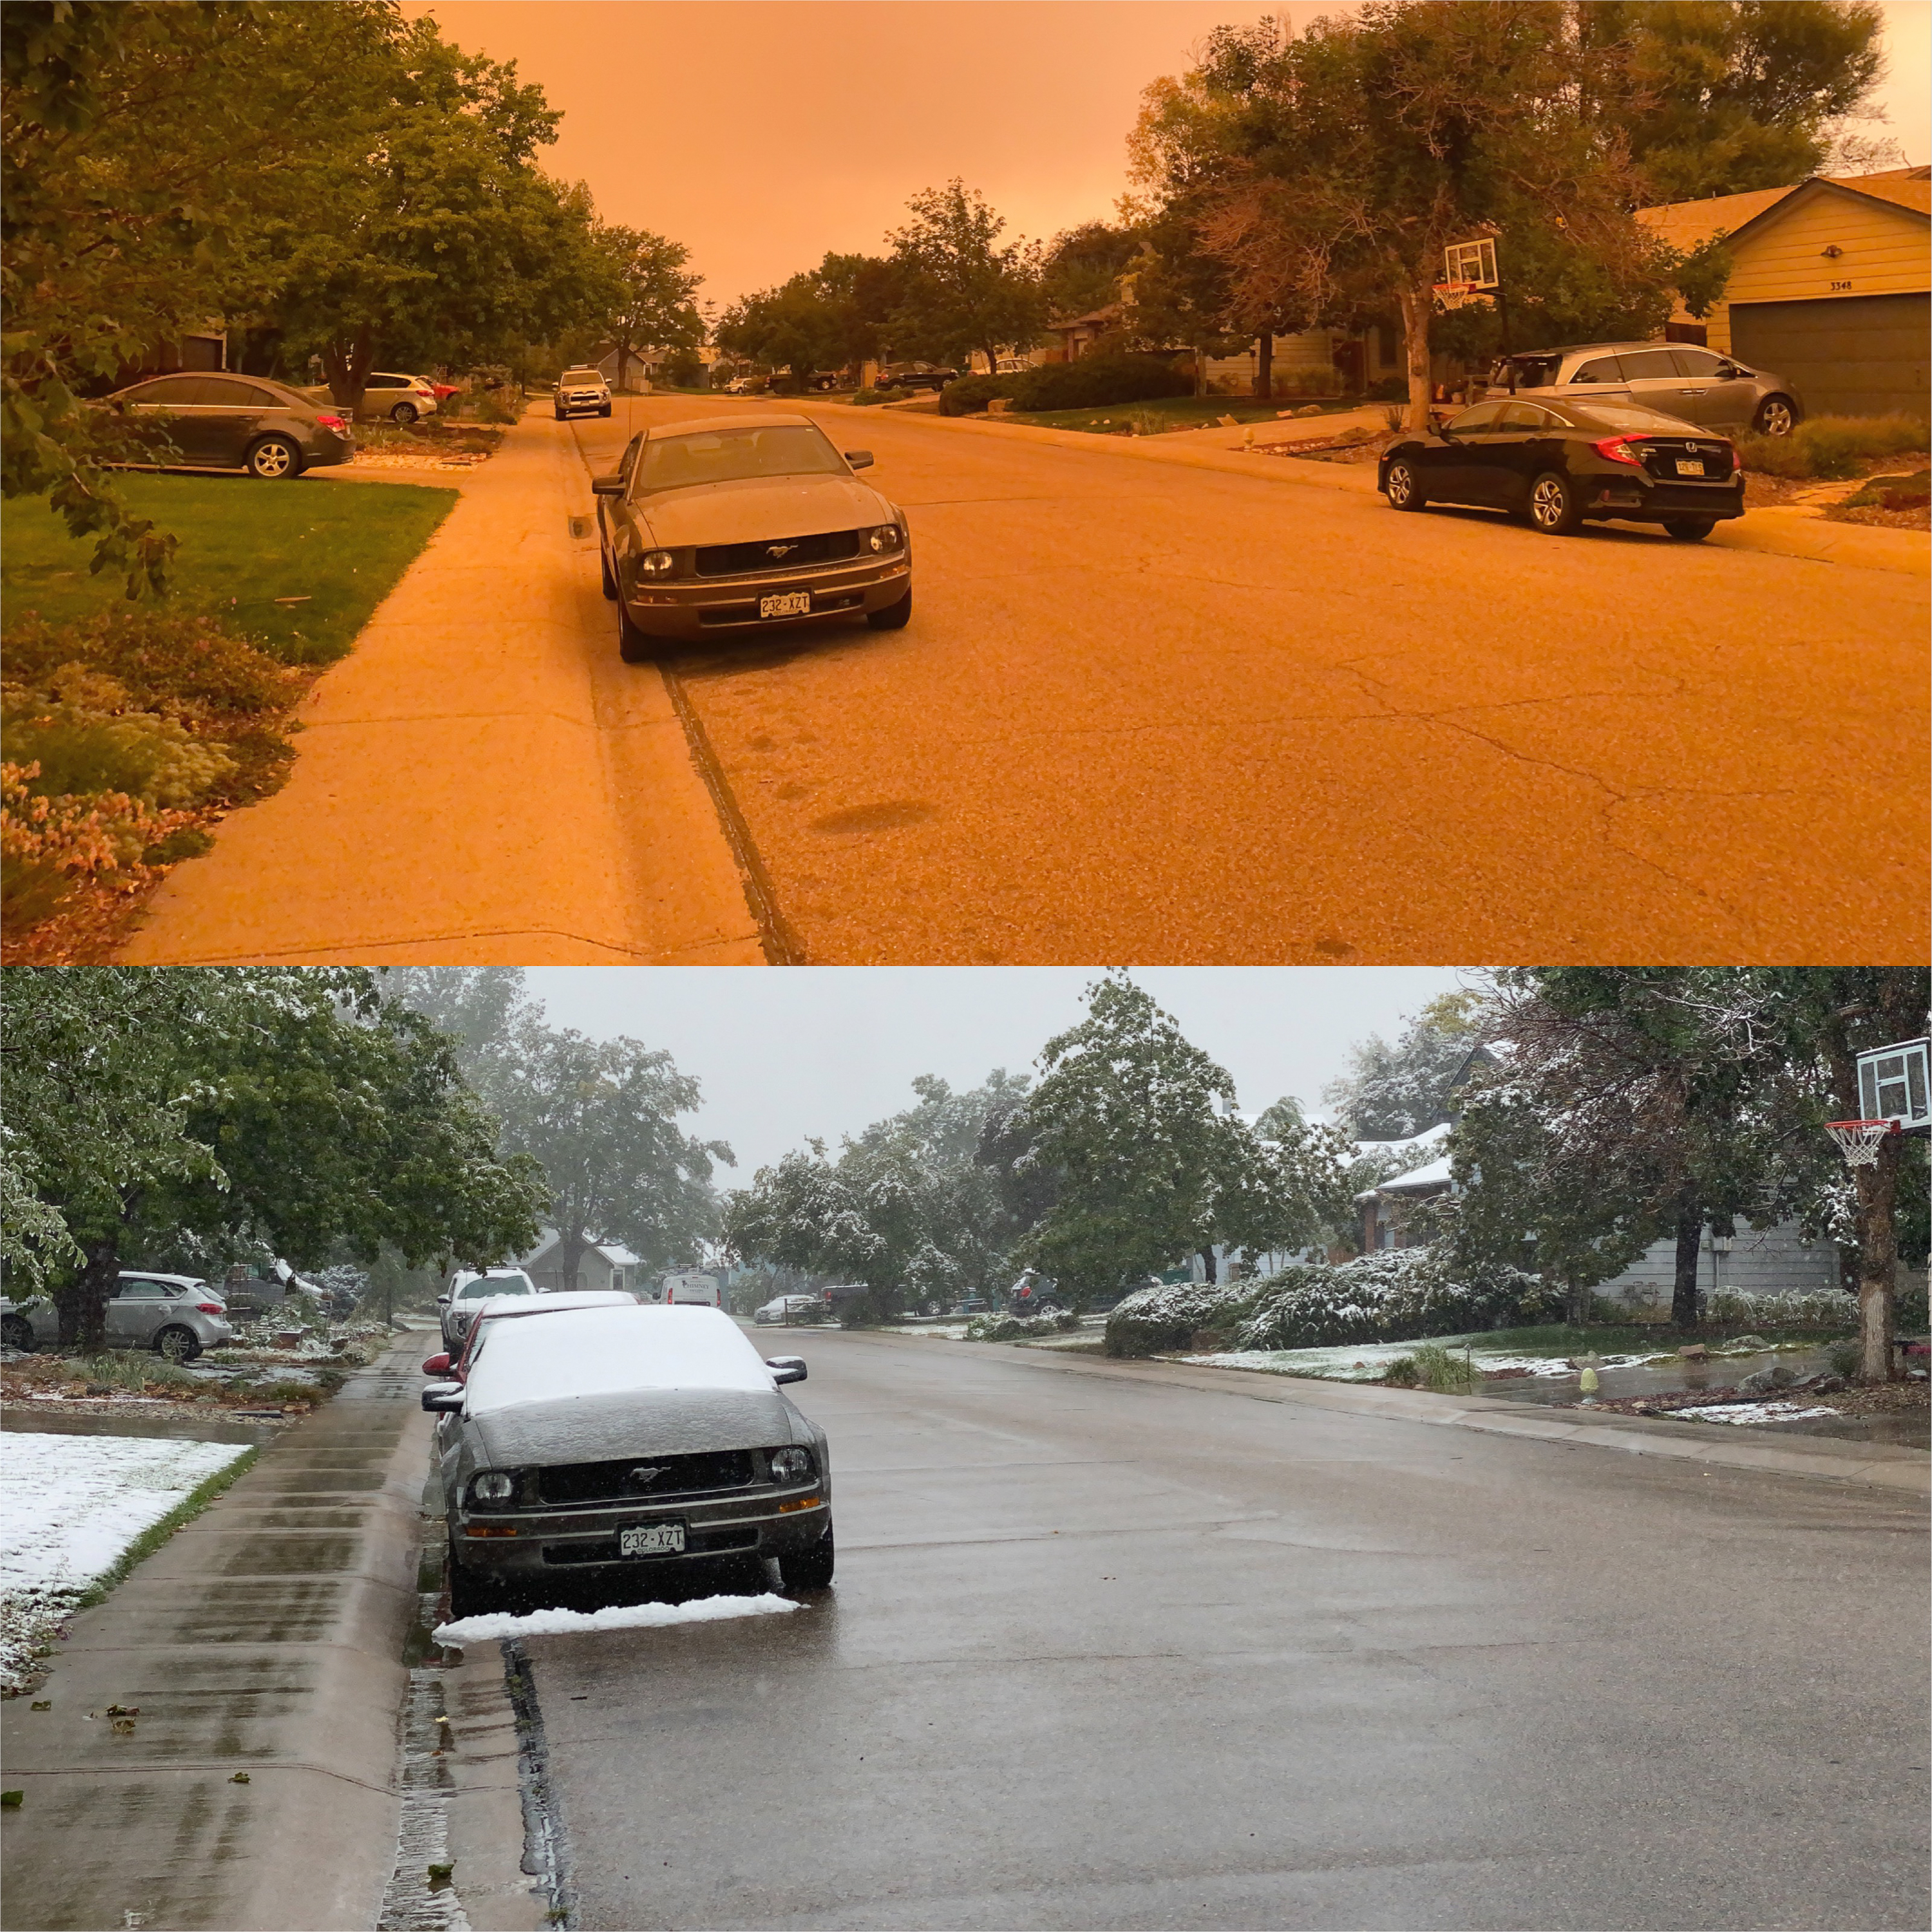 Fire and Ice- what a difference one day can make